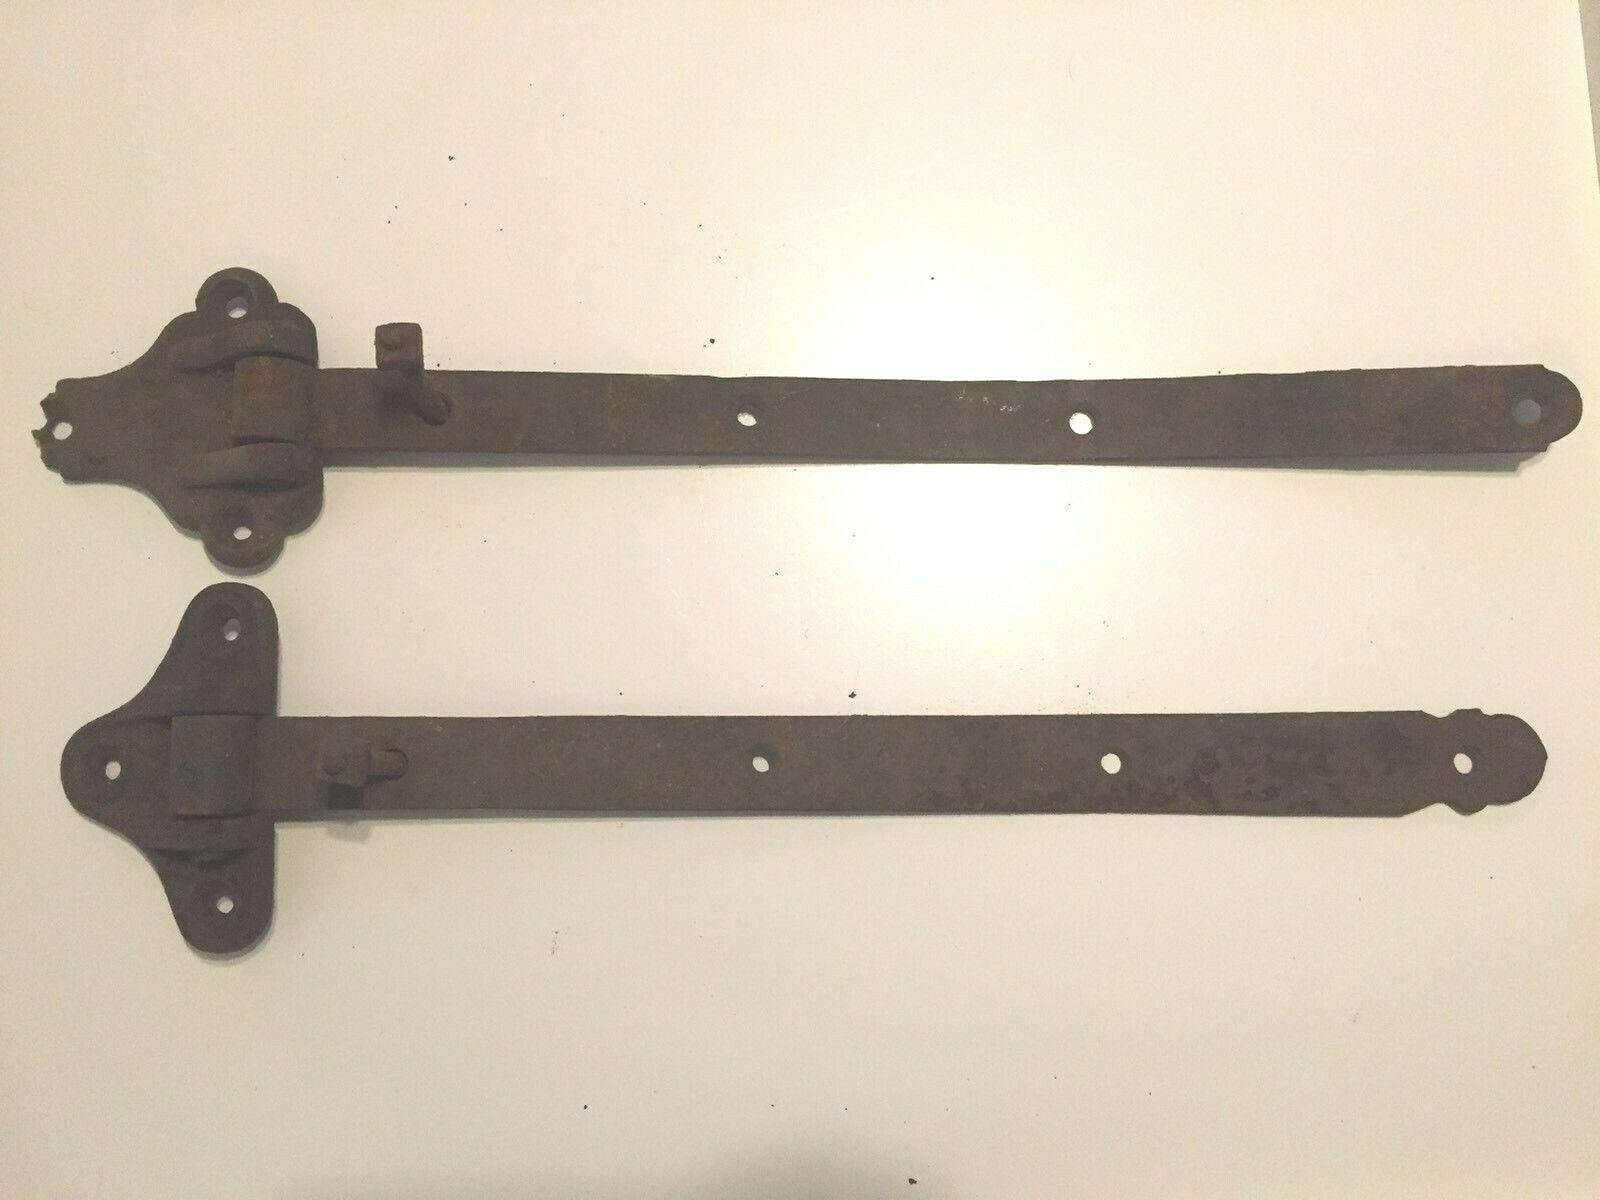 2 Antique Iron Hinges 20 Wide Straps - Barn Or Industrial Hardware - $39.99